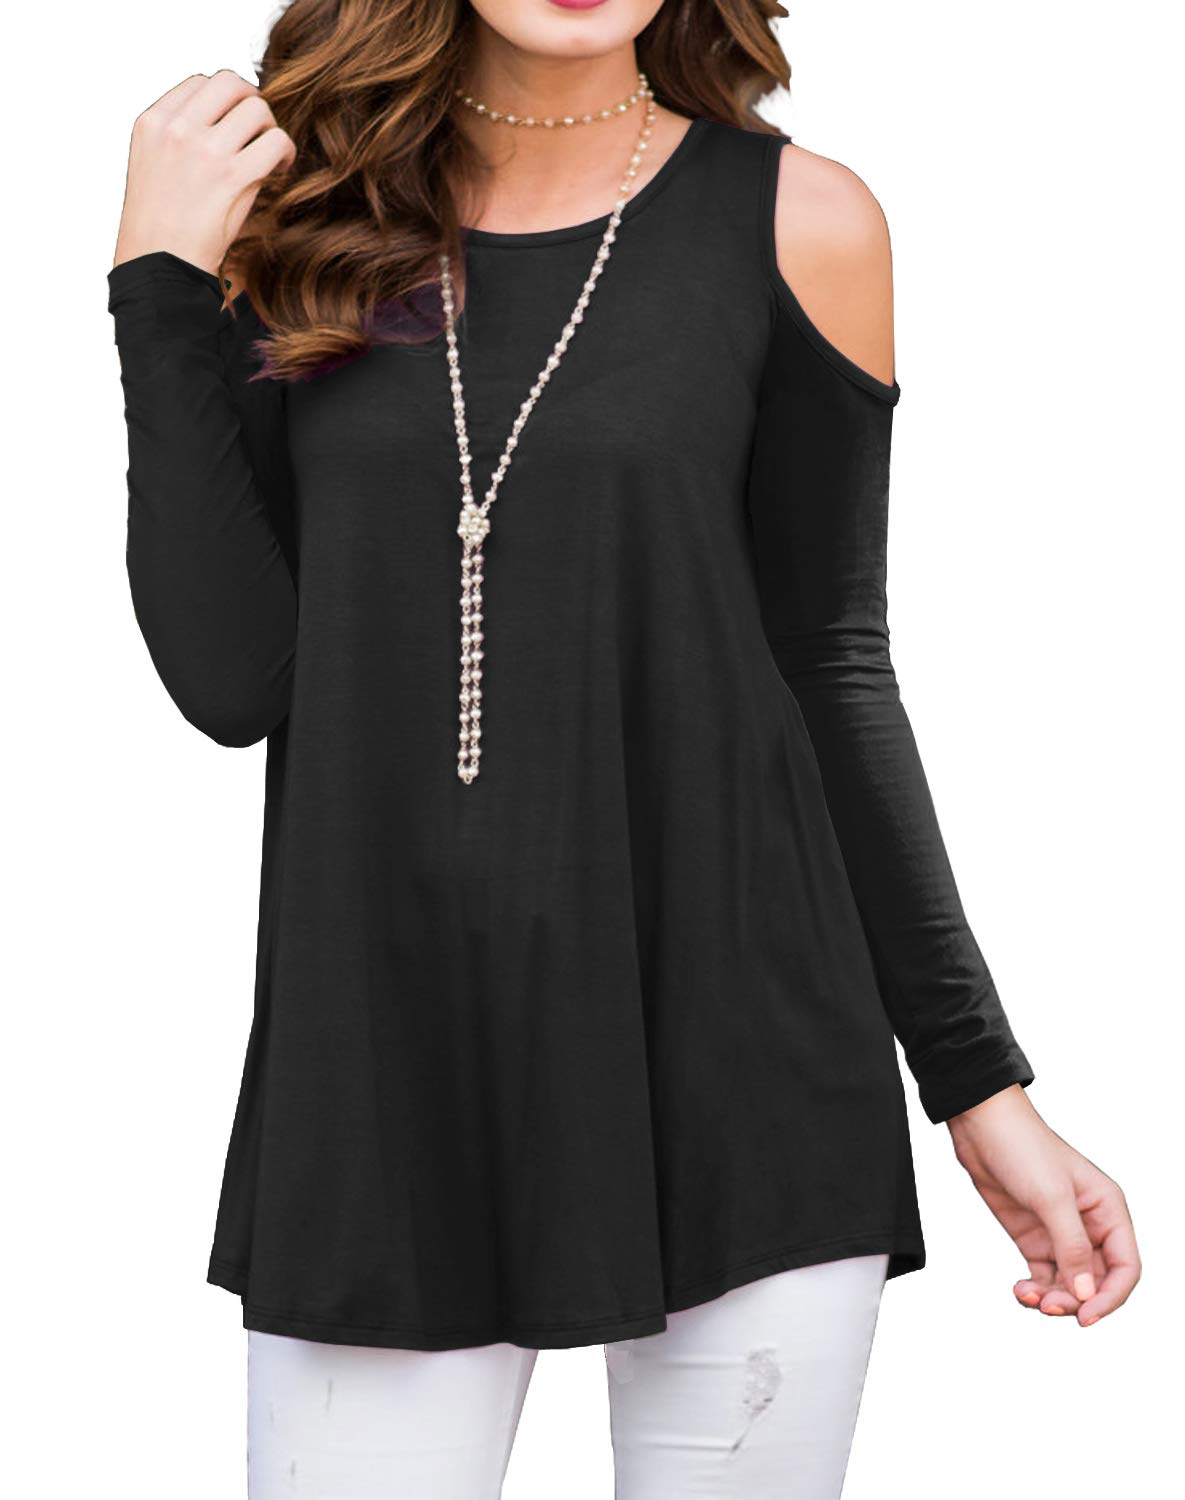 PrinStory Womens Long Sleeve Off Shoulder Round Neck Casual Loose Top Blouse T-Shirt Black-XL